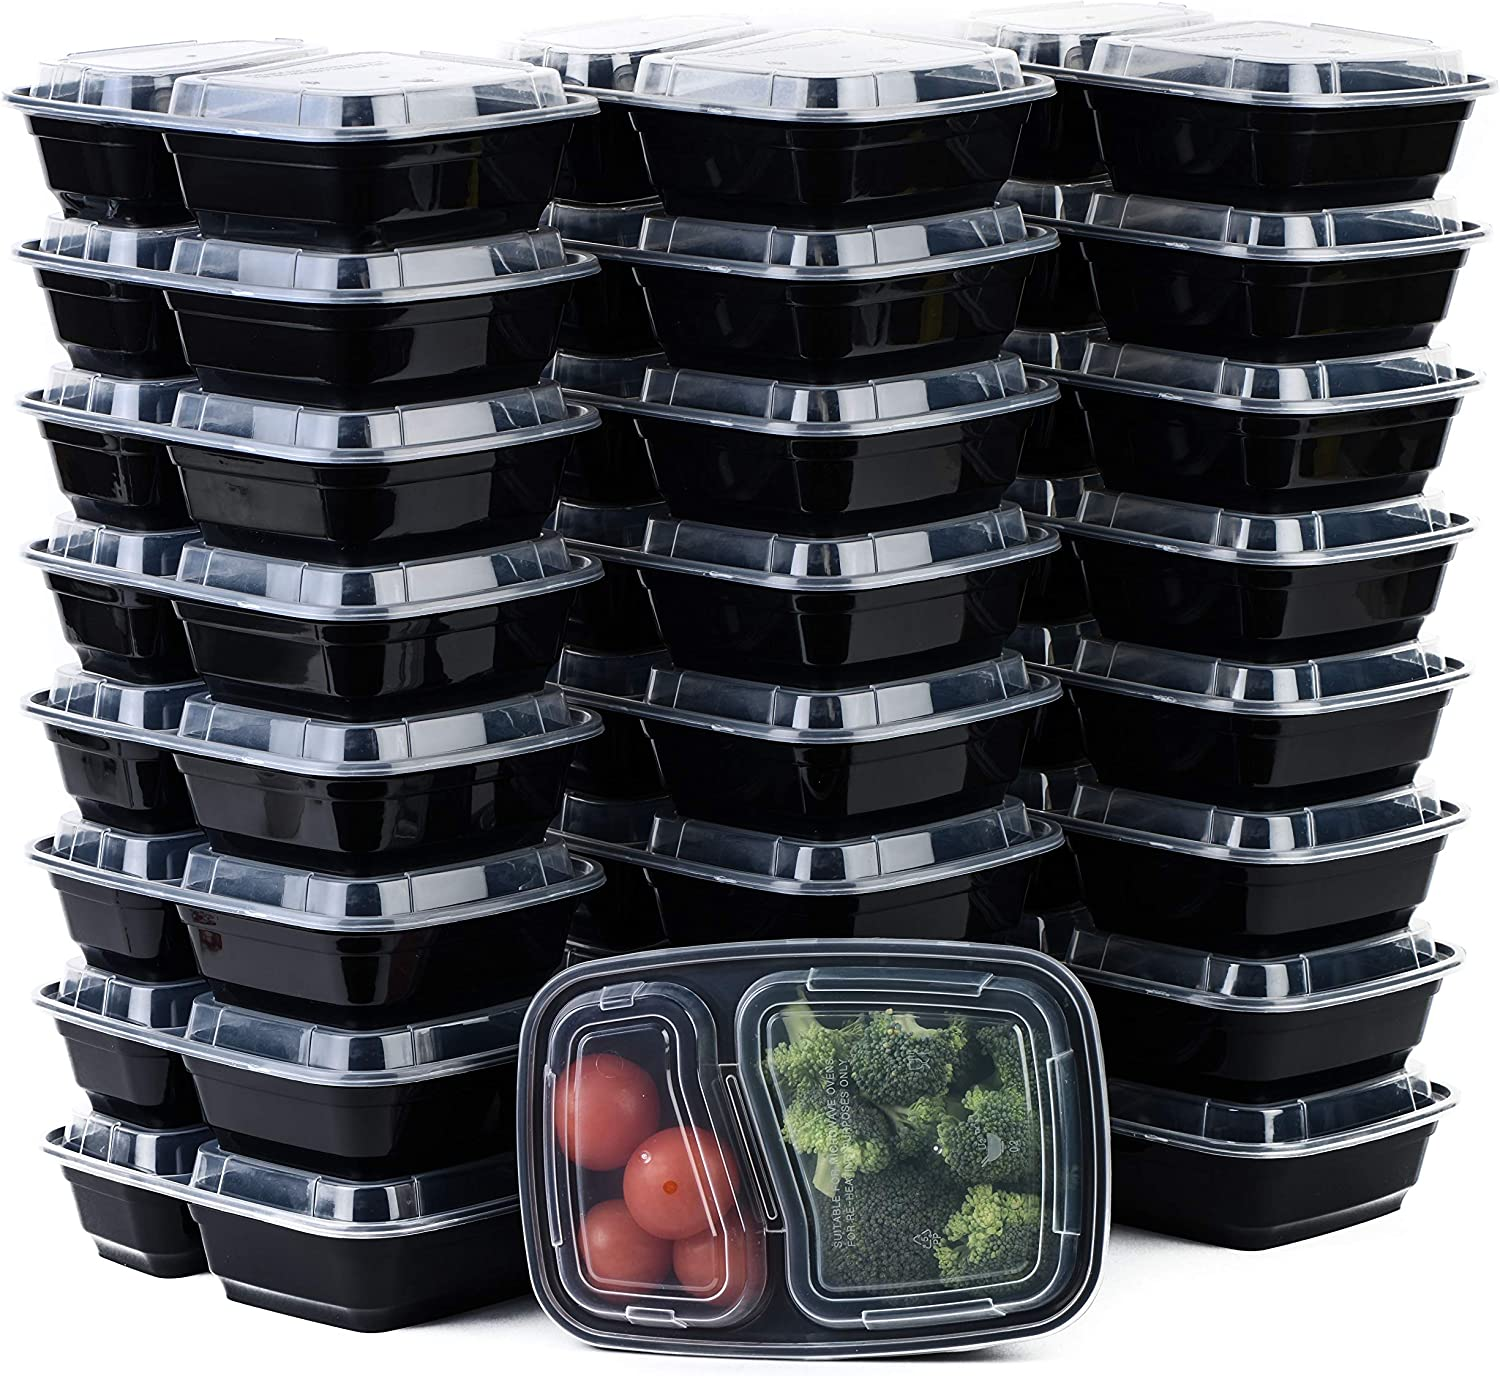 [100 Pack] 2 Compartment Microwavable Meal Prep Containers with Lids 38 oz, Reusable Bento Box, Food Storage Containers | BPA Free | Stackable | Lunch Boxes, Microwave/Dishwasher/Freezer Safe